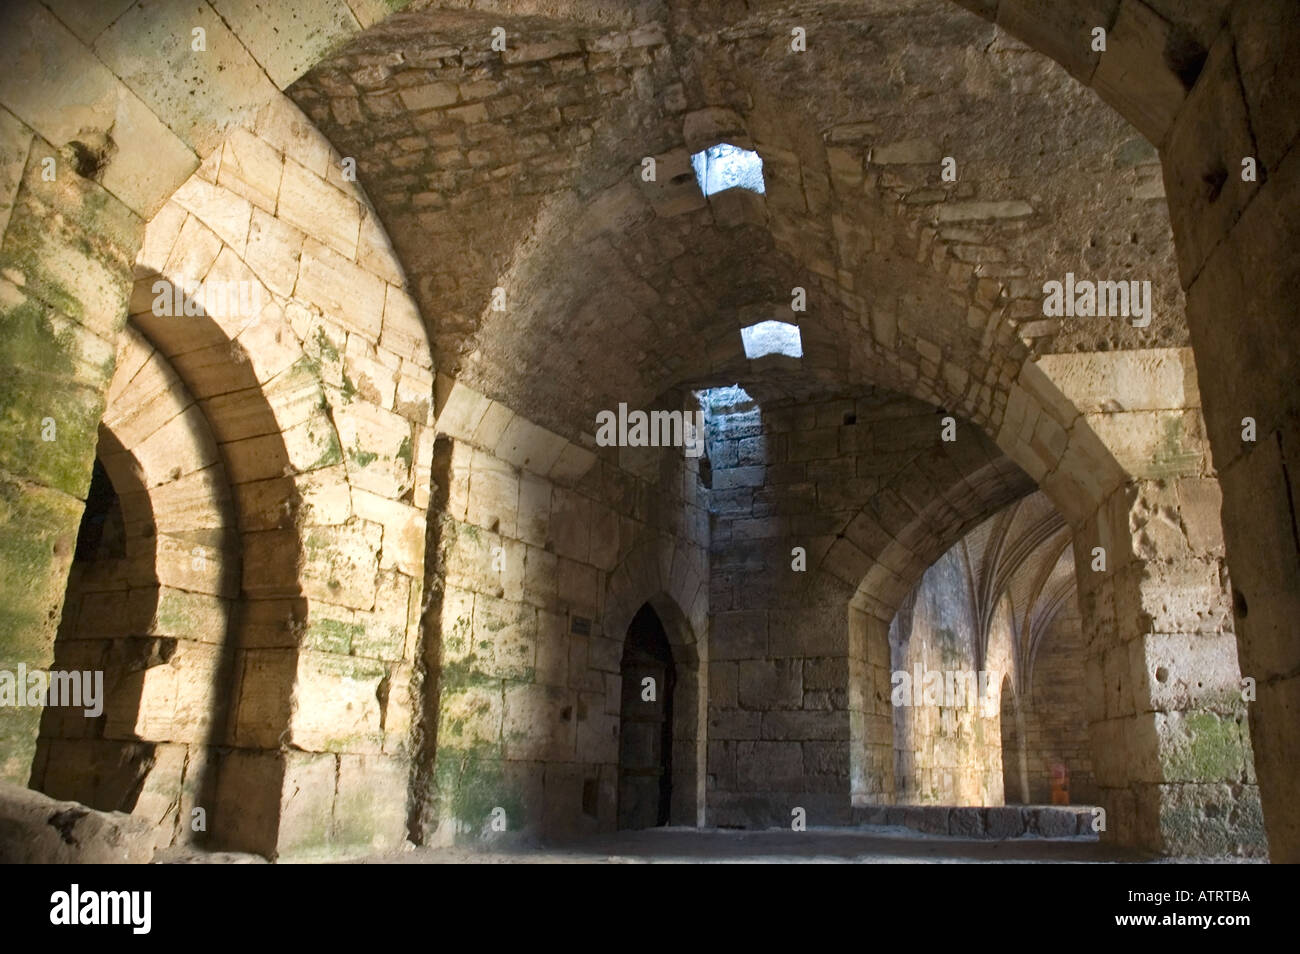 High vaulted gothic style arched ceilings and stone doorways, Crac des Chavaliers, Syria, Middle East. DSC_6099 - Stock Image